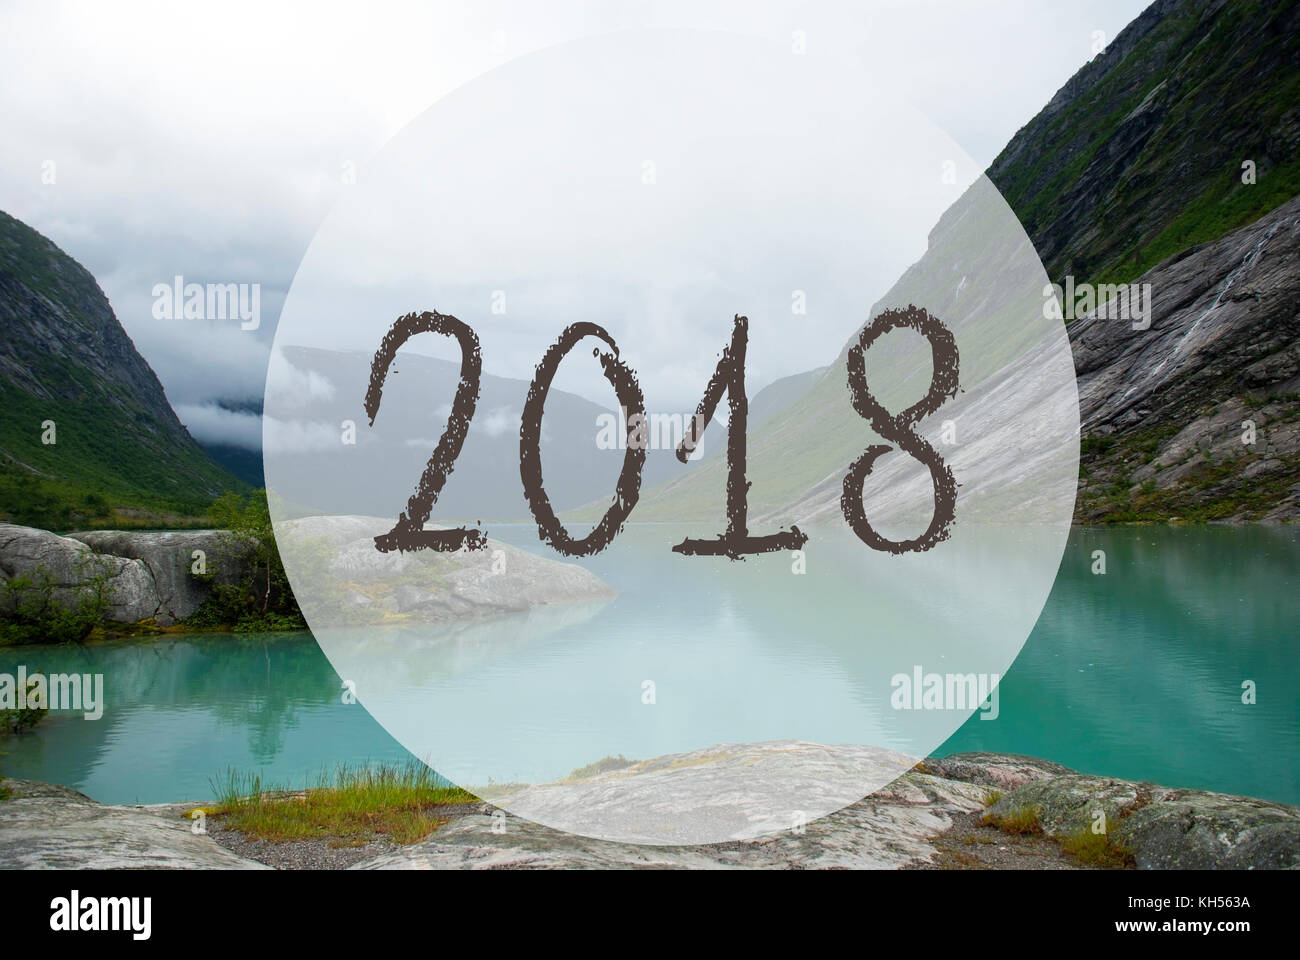 text 2018 for happy new year greetings lake with mountains in norway cloudy sky peaceful scenery landscape with rocks and grass greeting card